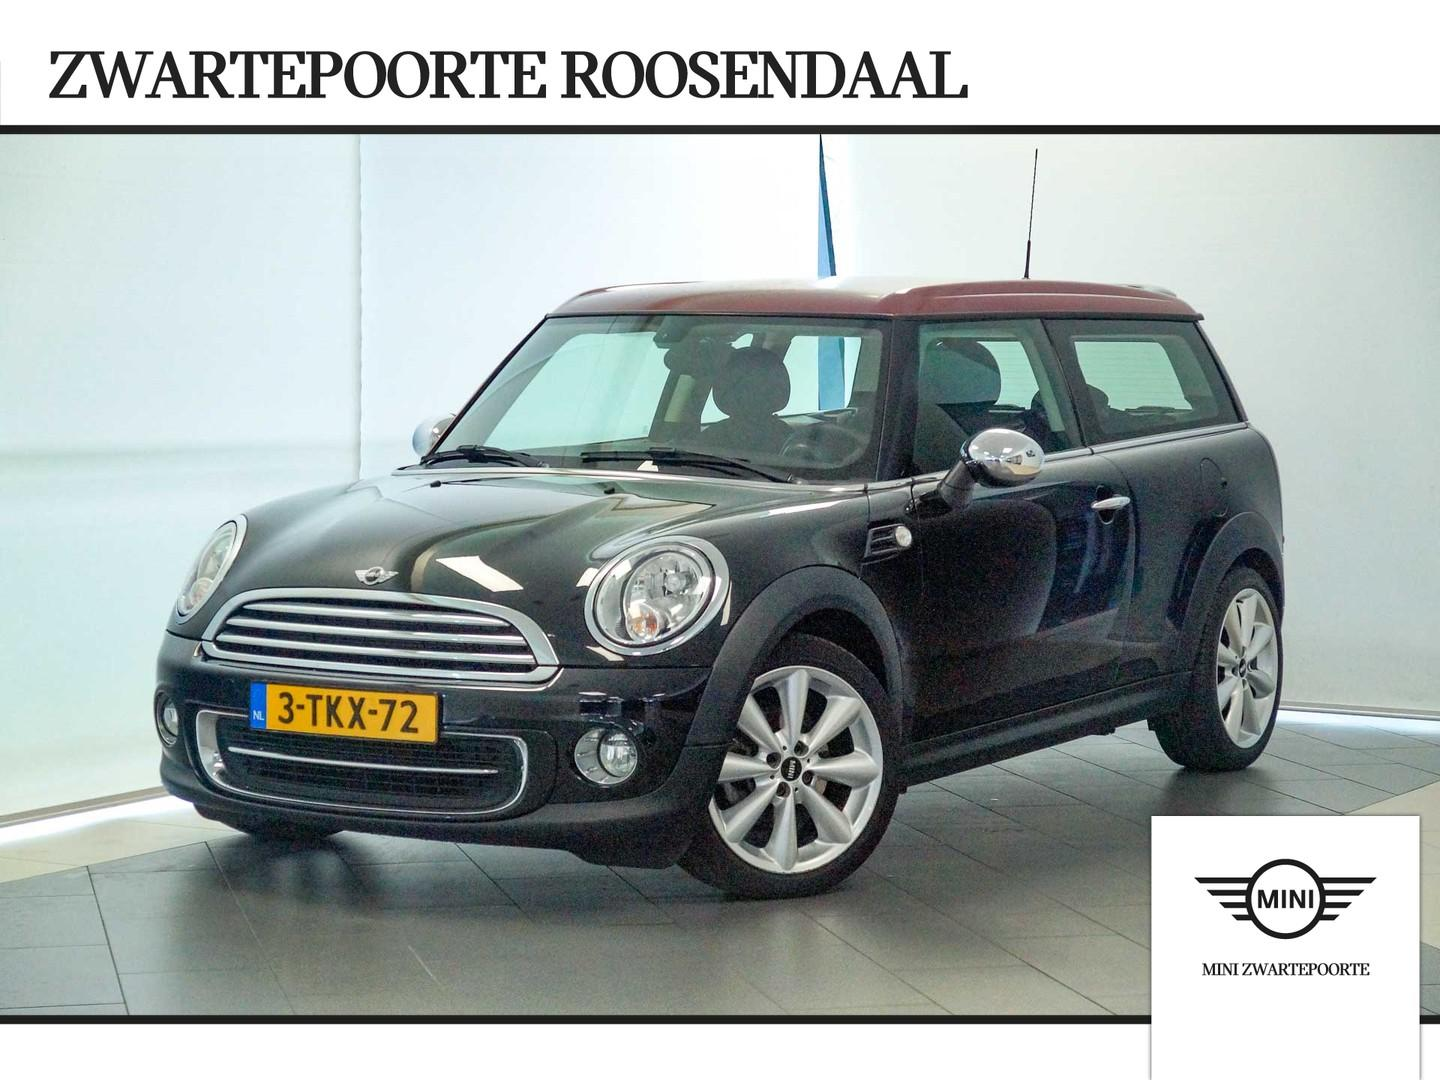 Mini Clubman 1.6 cooper final edition